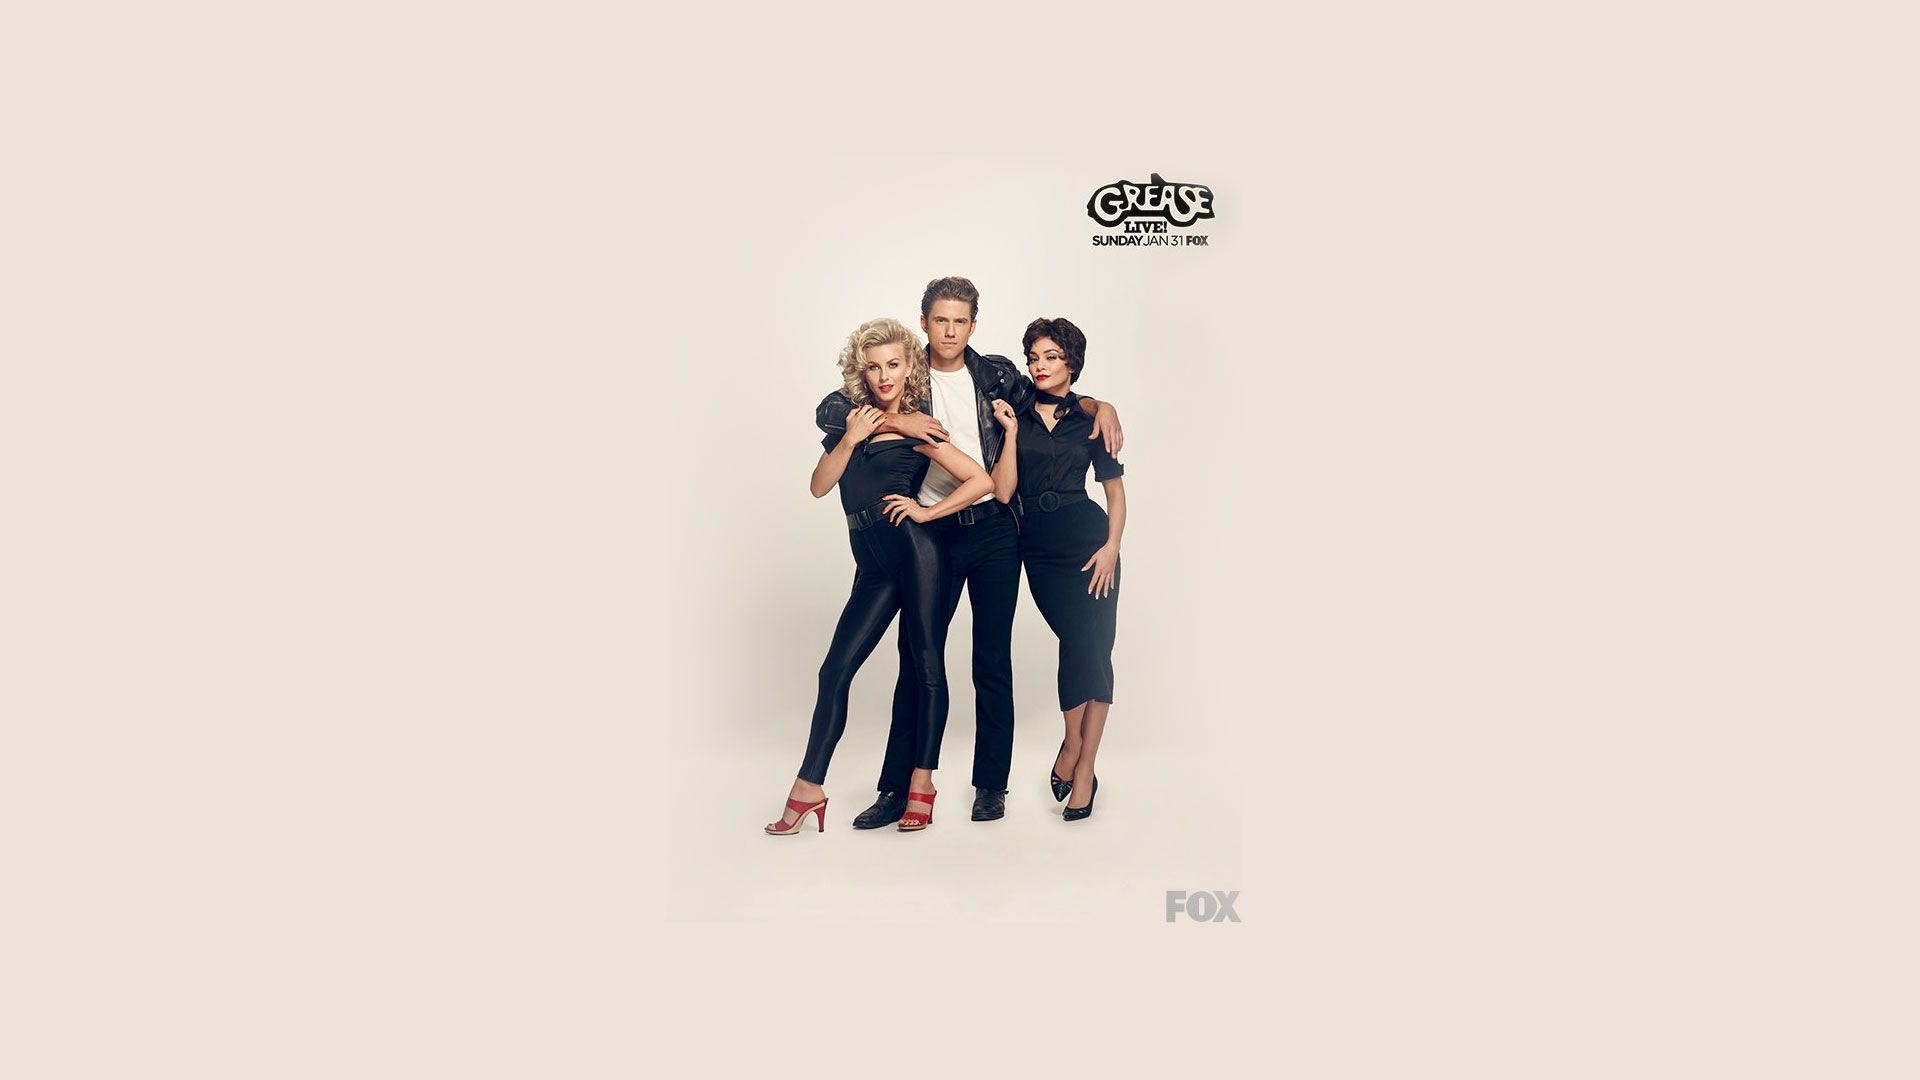 1920x1080 43+ Grease Wallpapers